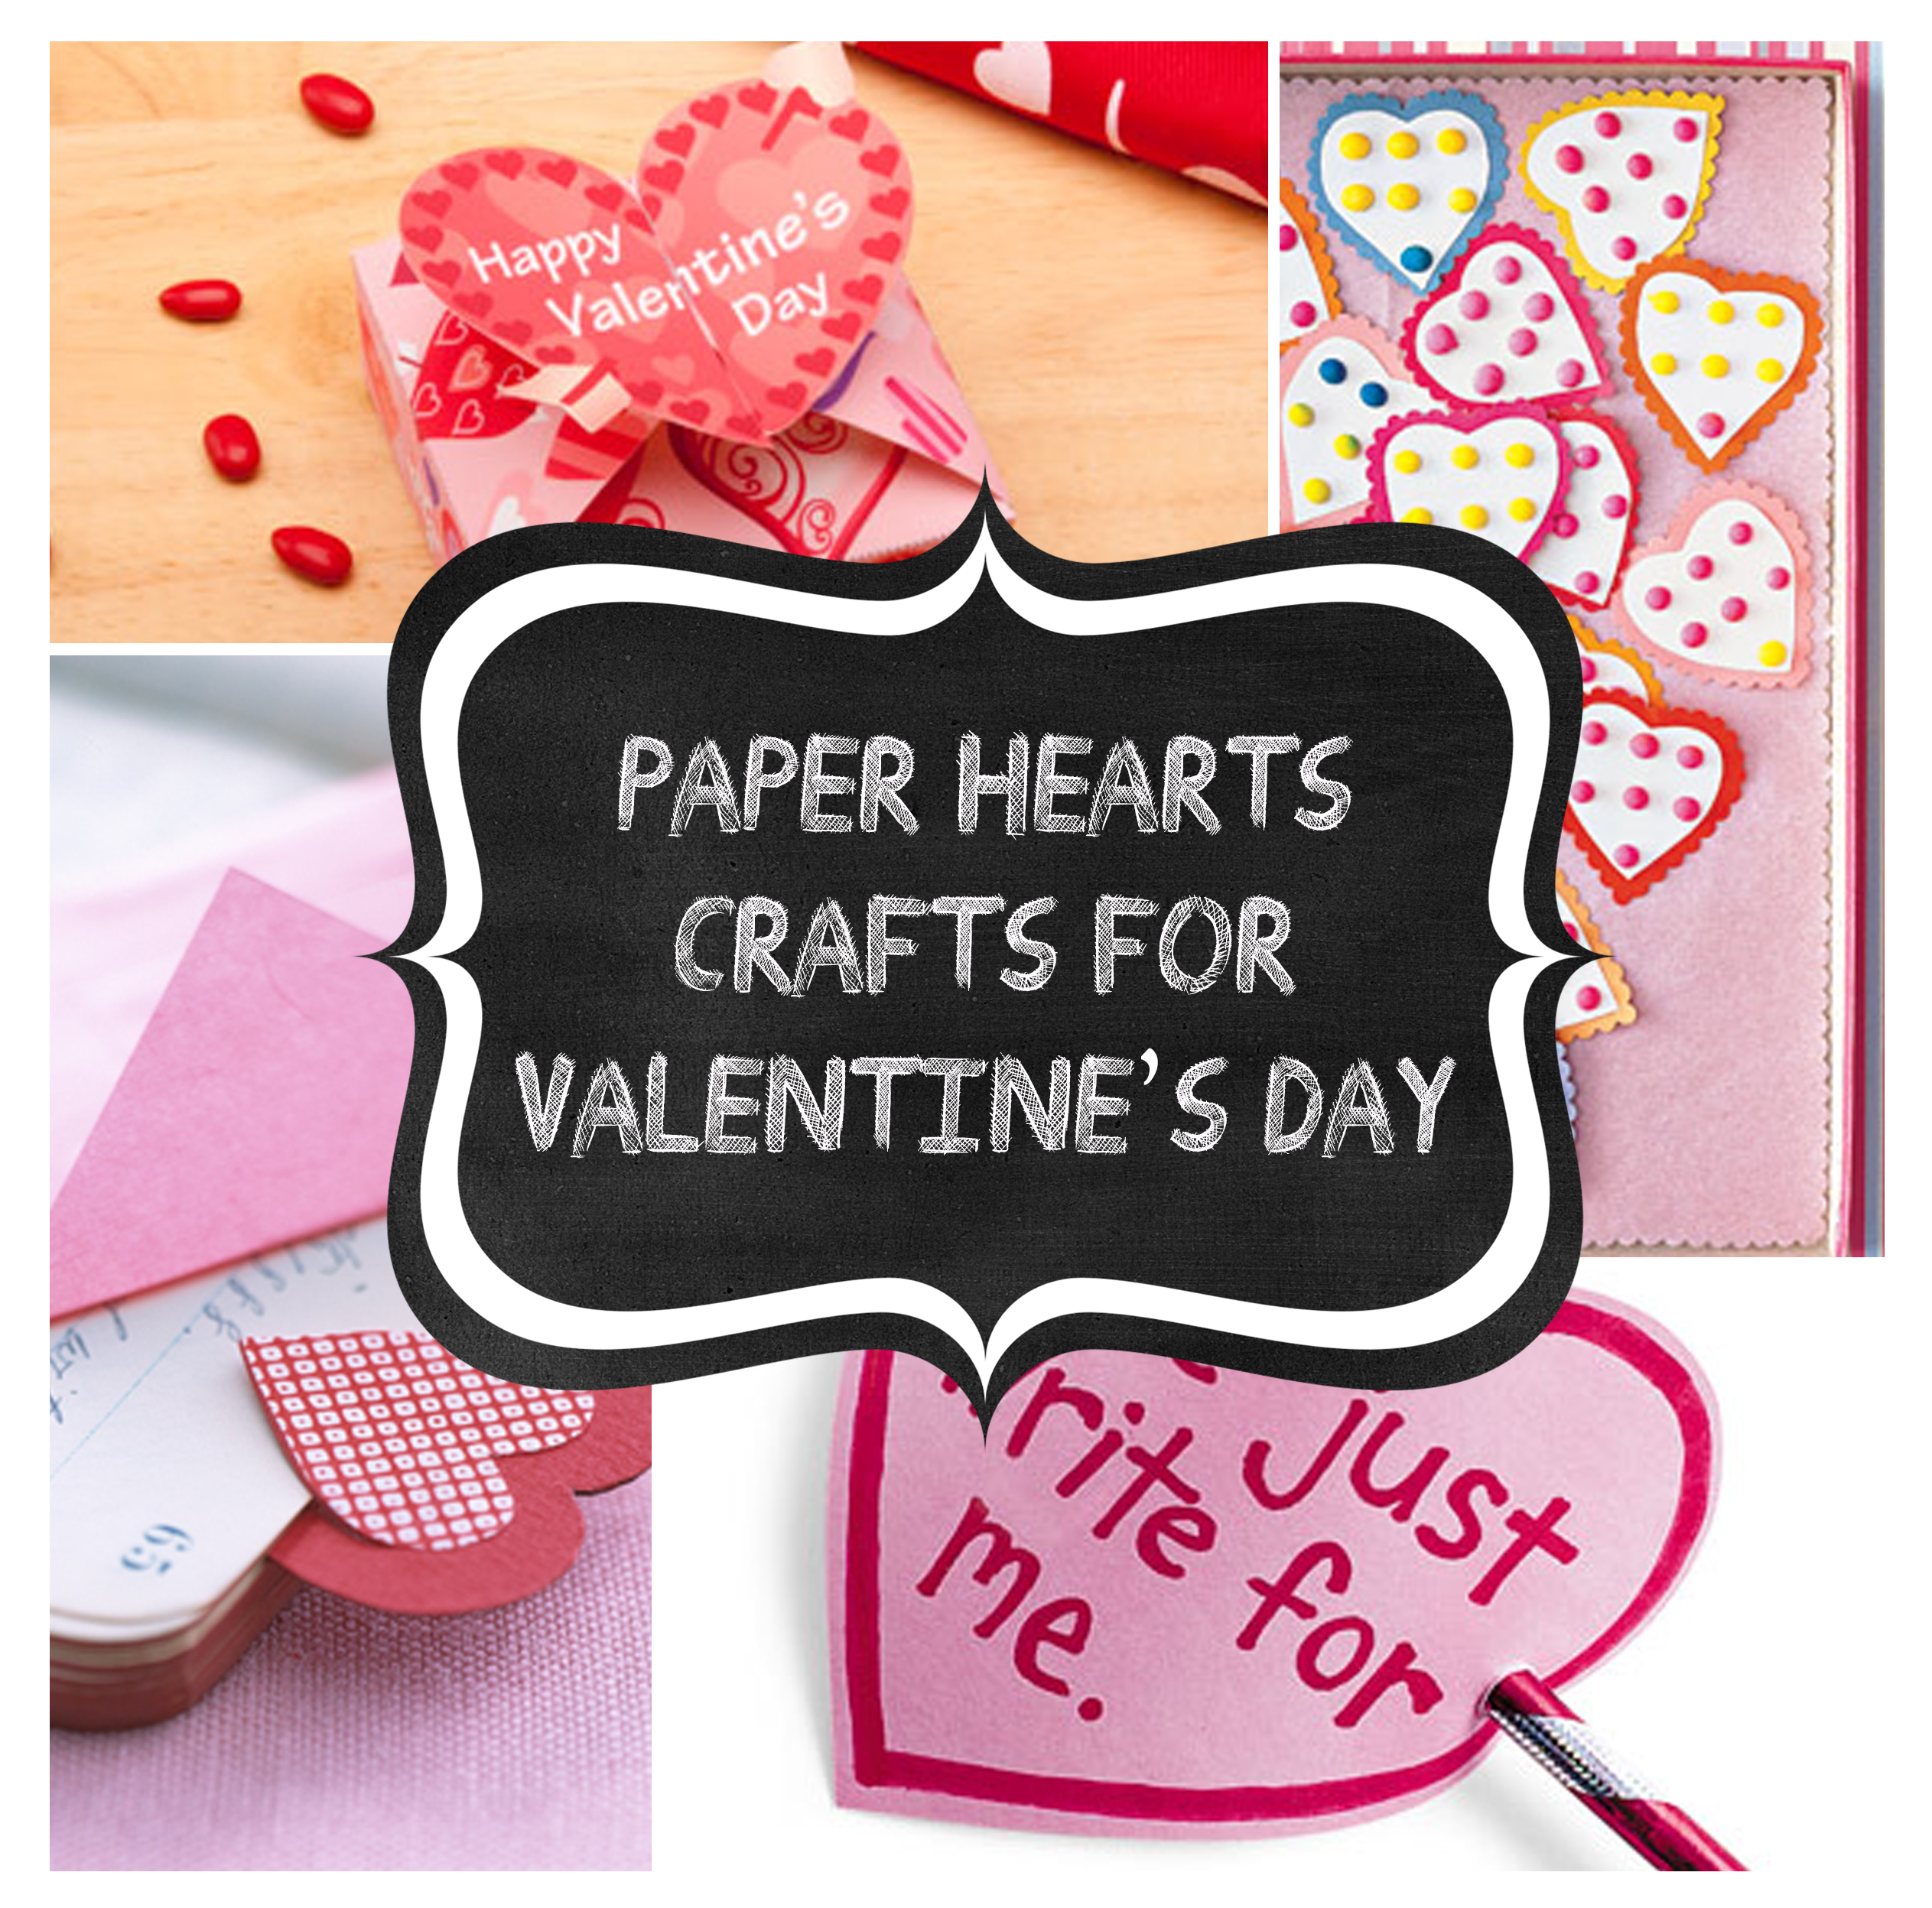 Paper heart crafts for valentines day paper hearts crafts for valentines day jeuxipadfo Gallery